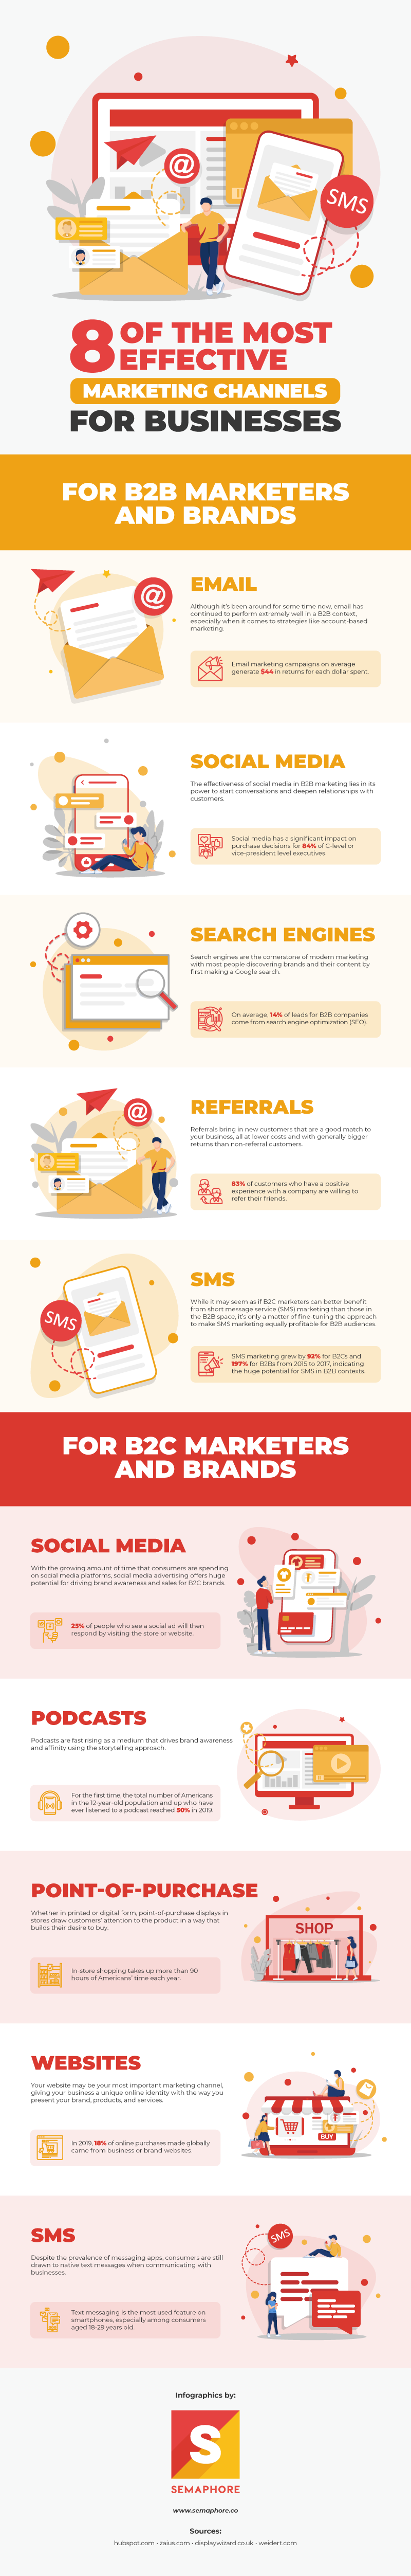 Effective Marketing Channels for Businesses - Infographic